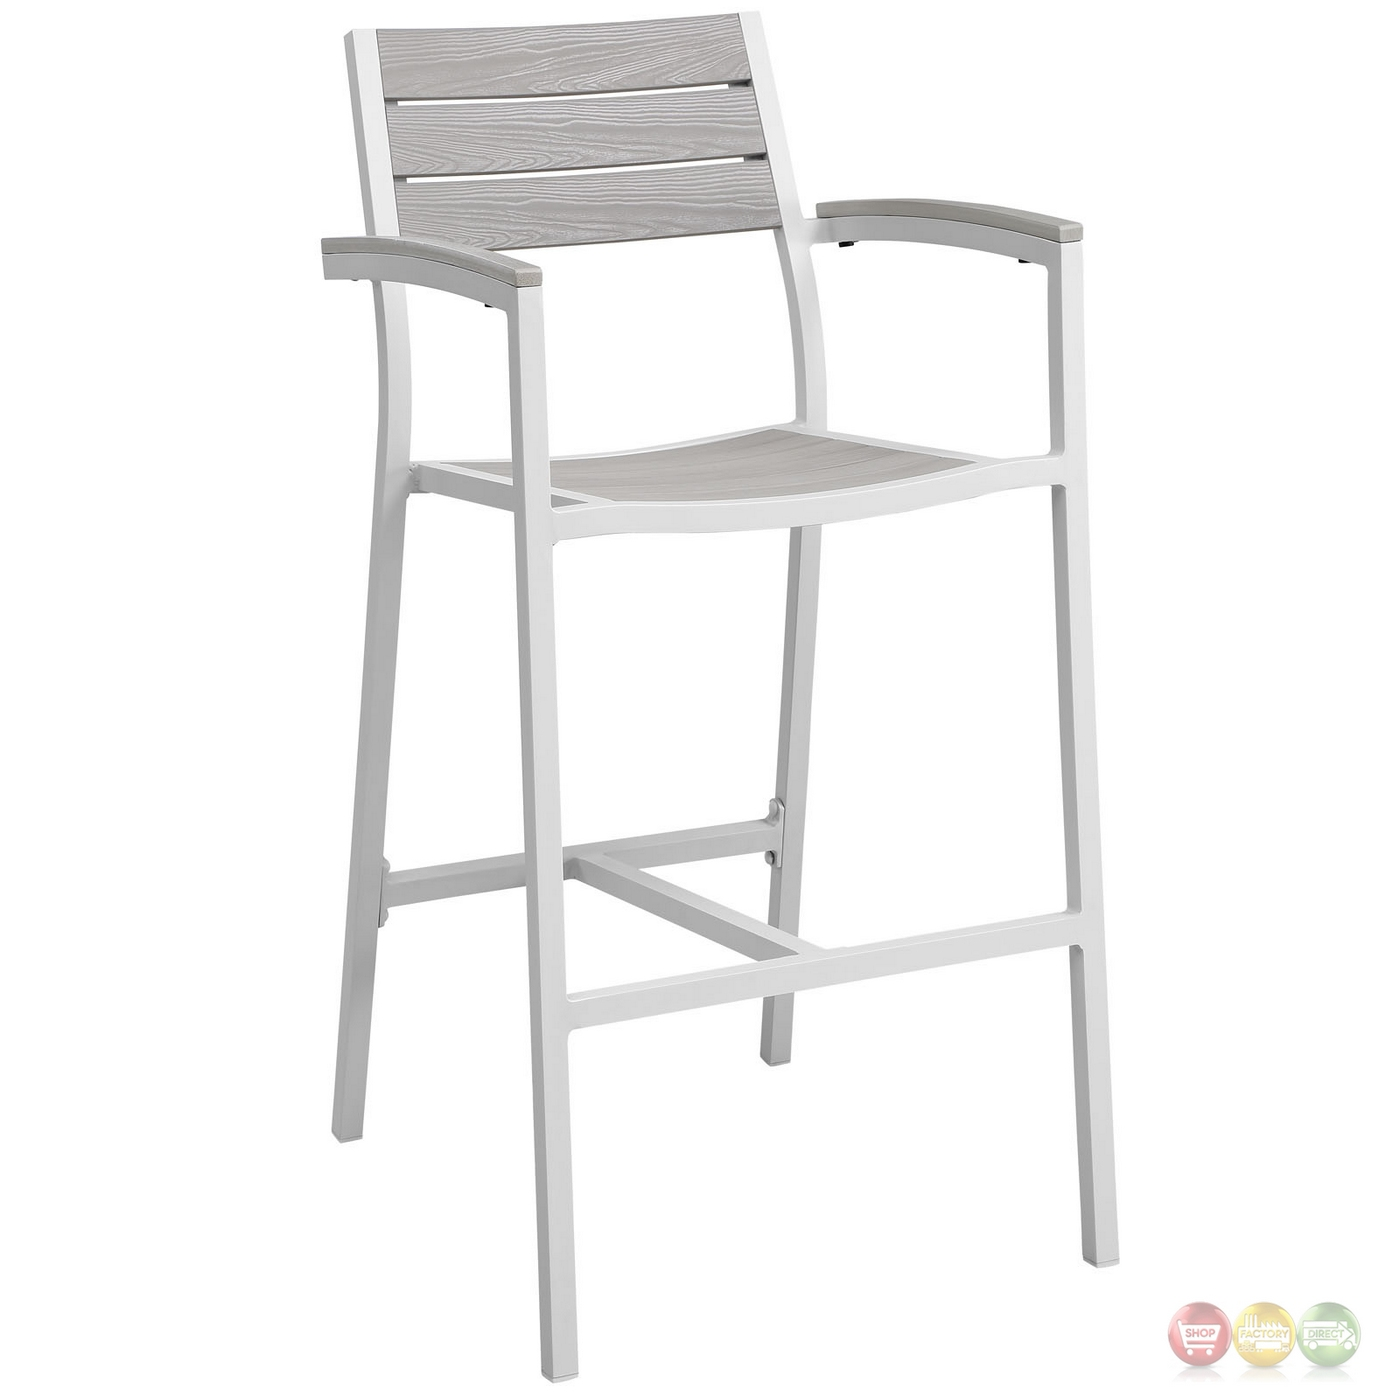 Set Of 2 Maine Rustic Wooden Plank Board Outdoor Patio  : set of 2 maine rustic wooden plank board outdoor patio bar stool white light gray 3 from shopfactorydirect.com size 1400 x 1400 jpeg 189kB